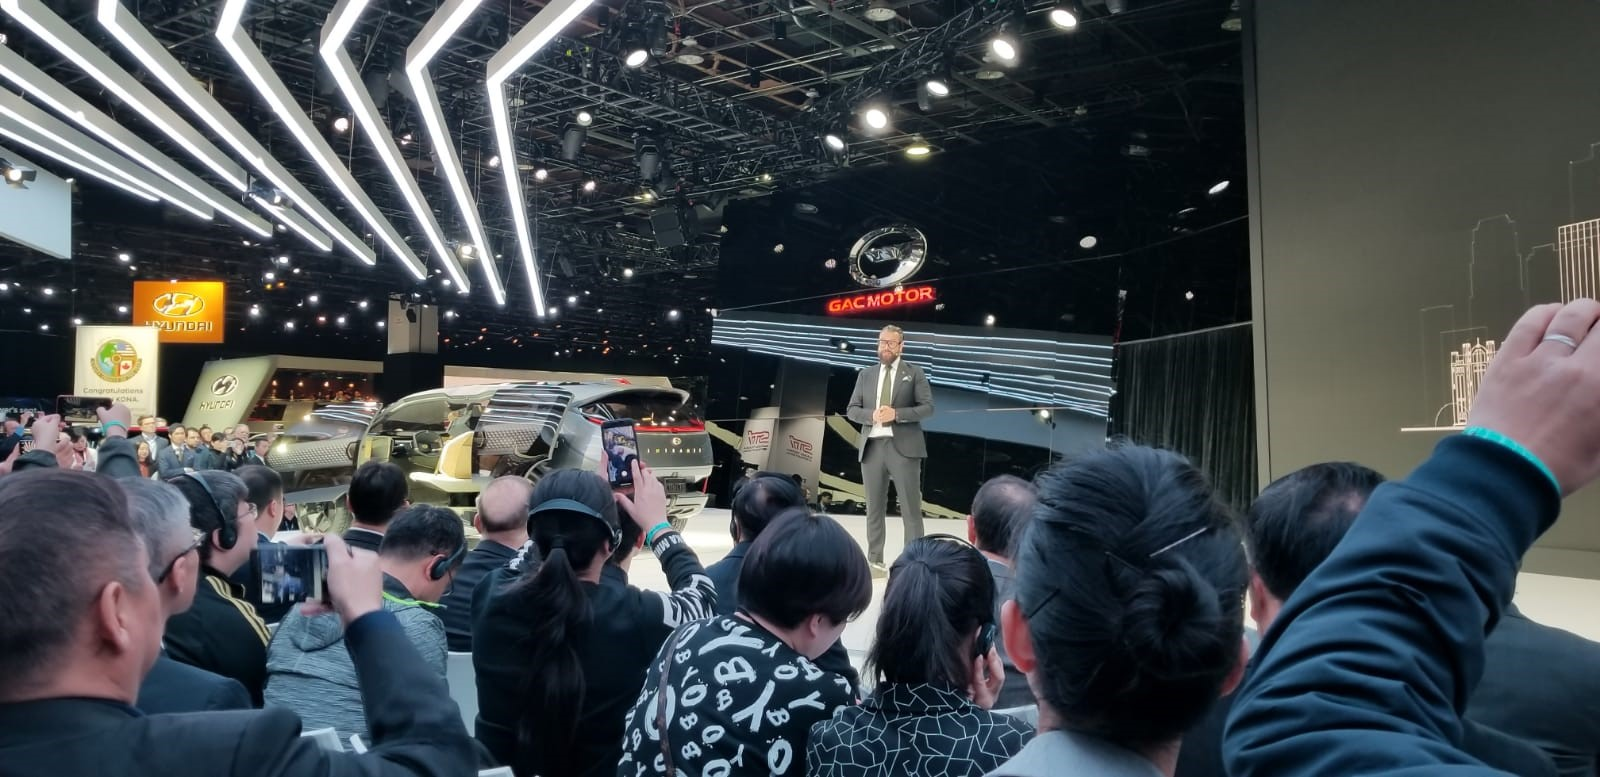 The GAC Motor presentation at NAIAS 2019 in Detroit.